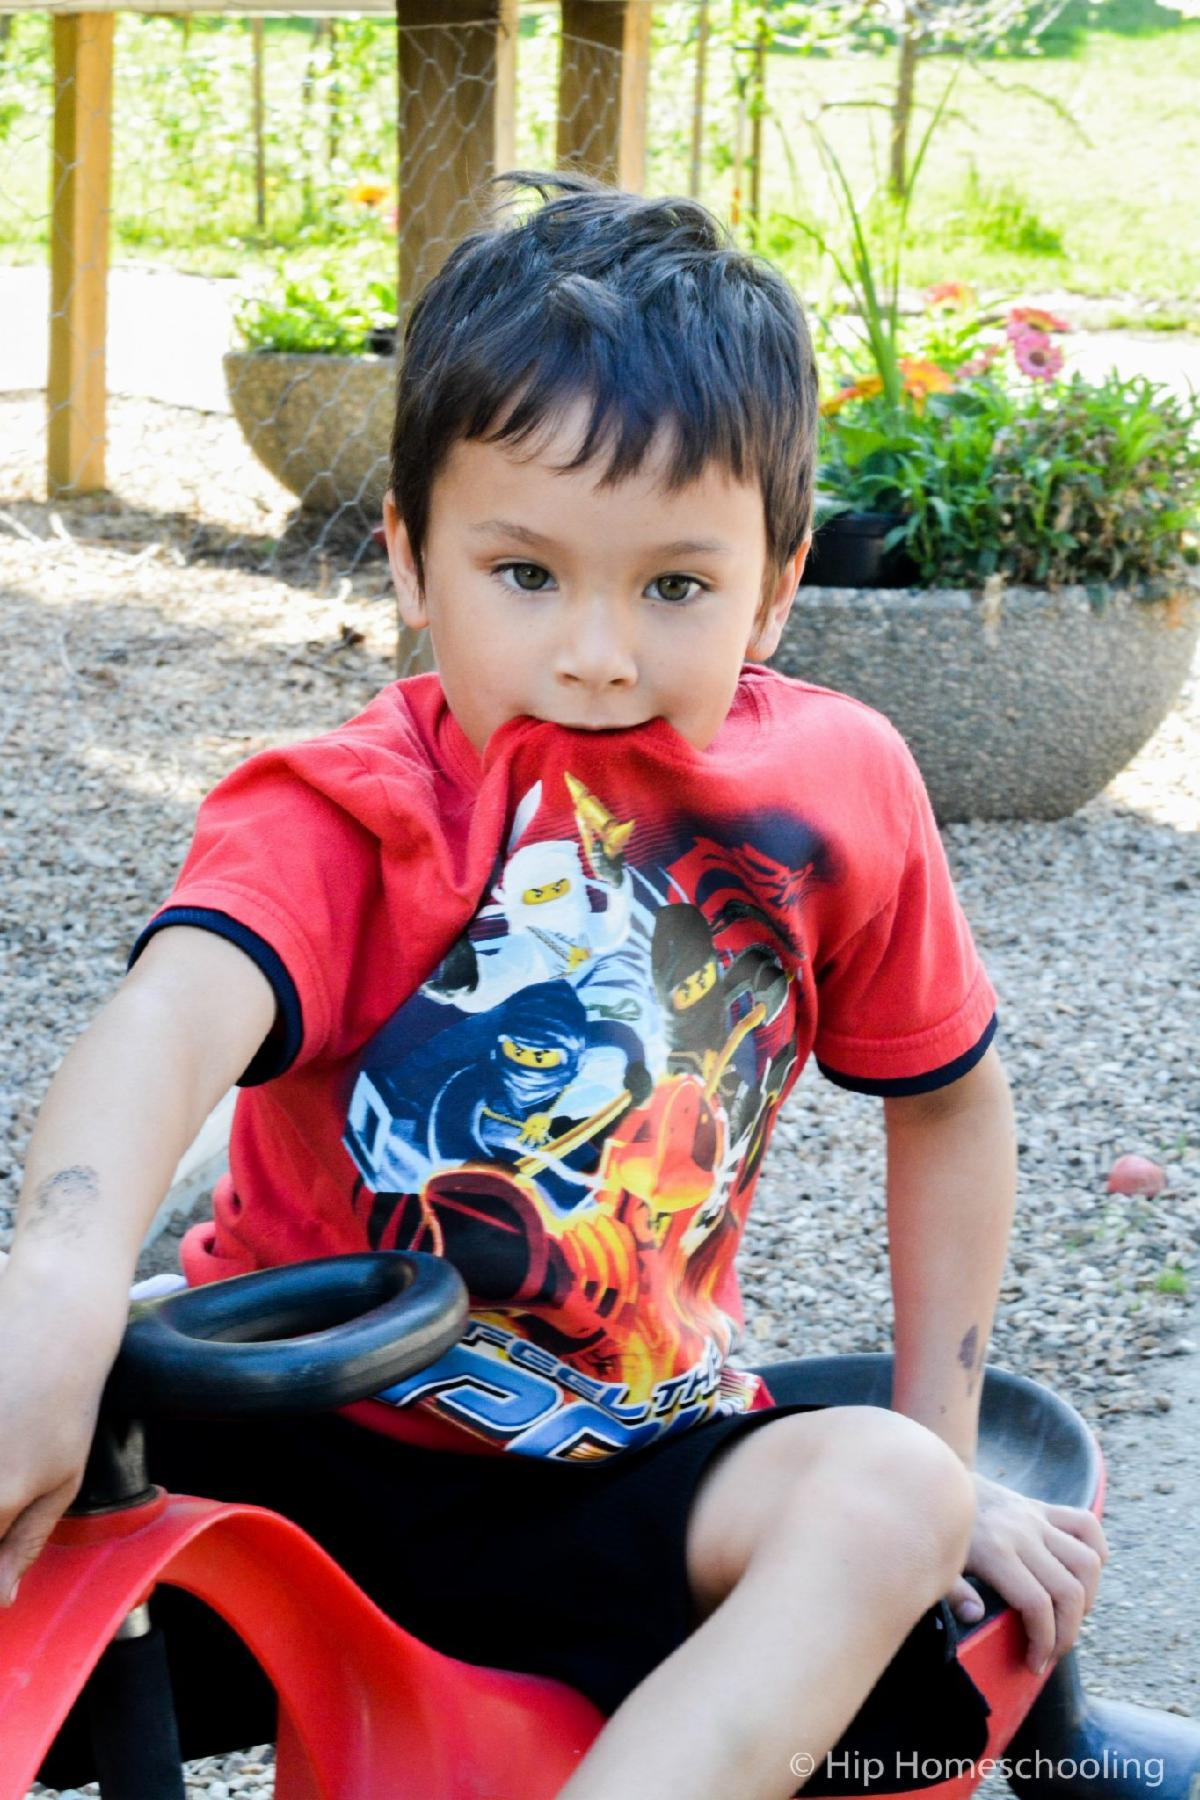 dark haired child sits on the ground wearing a red shirt with ninjas on the front holding the front of the neck of his shirt in his mouth